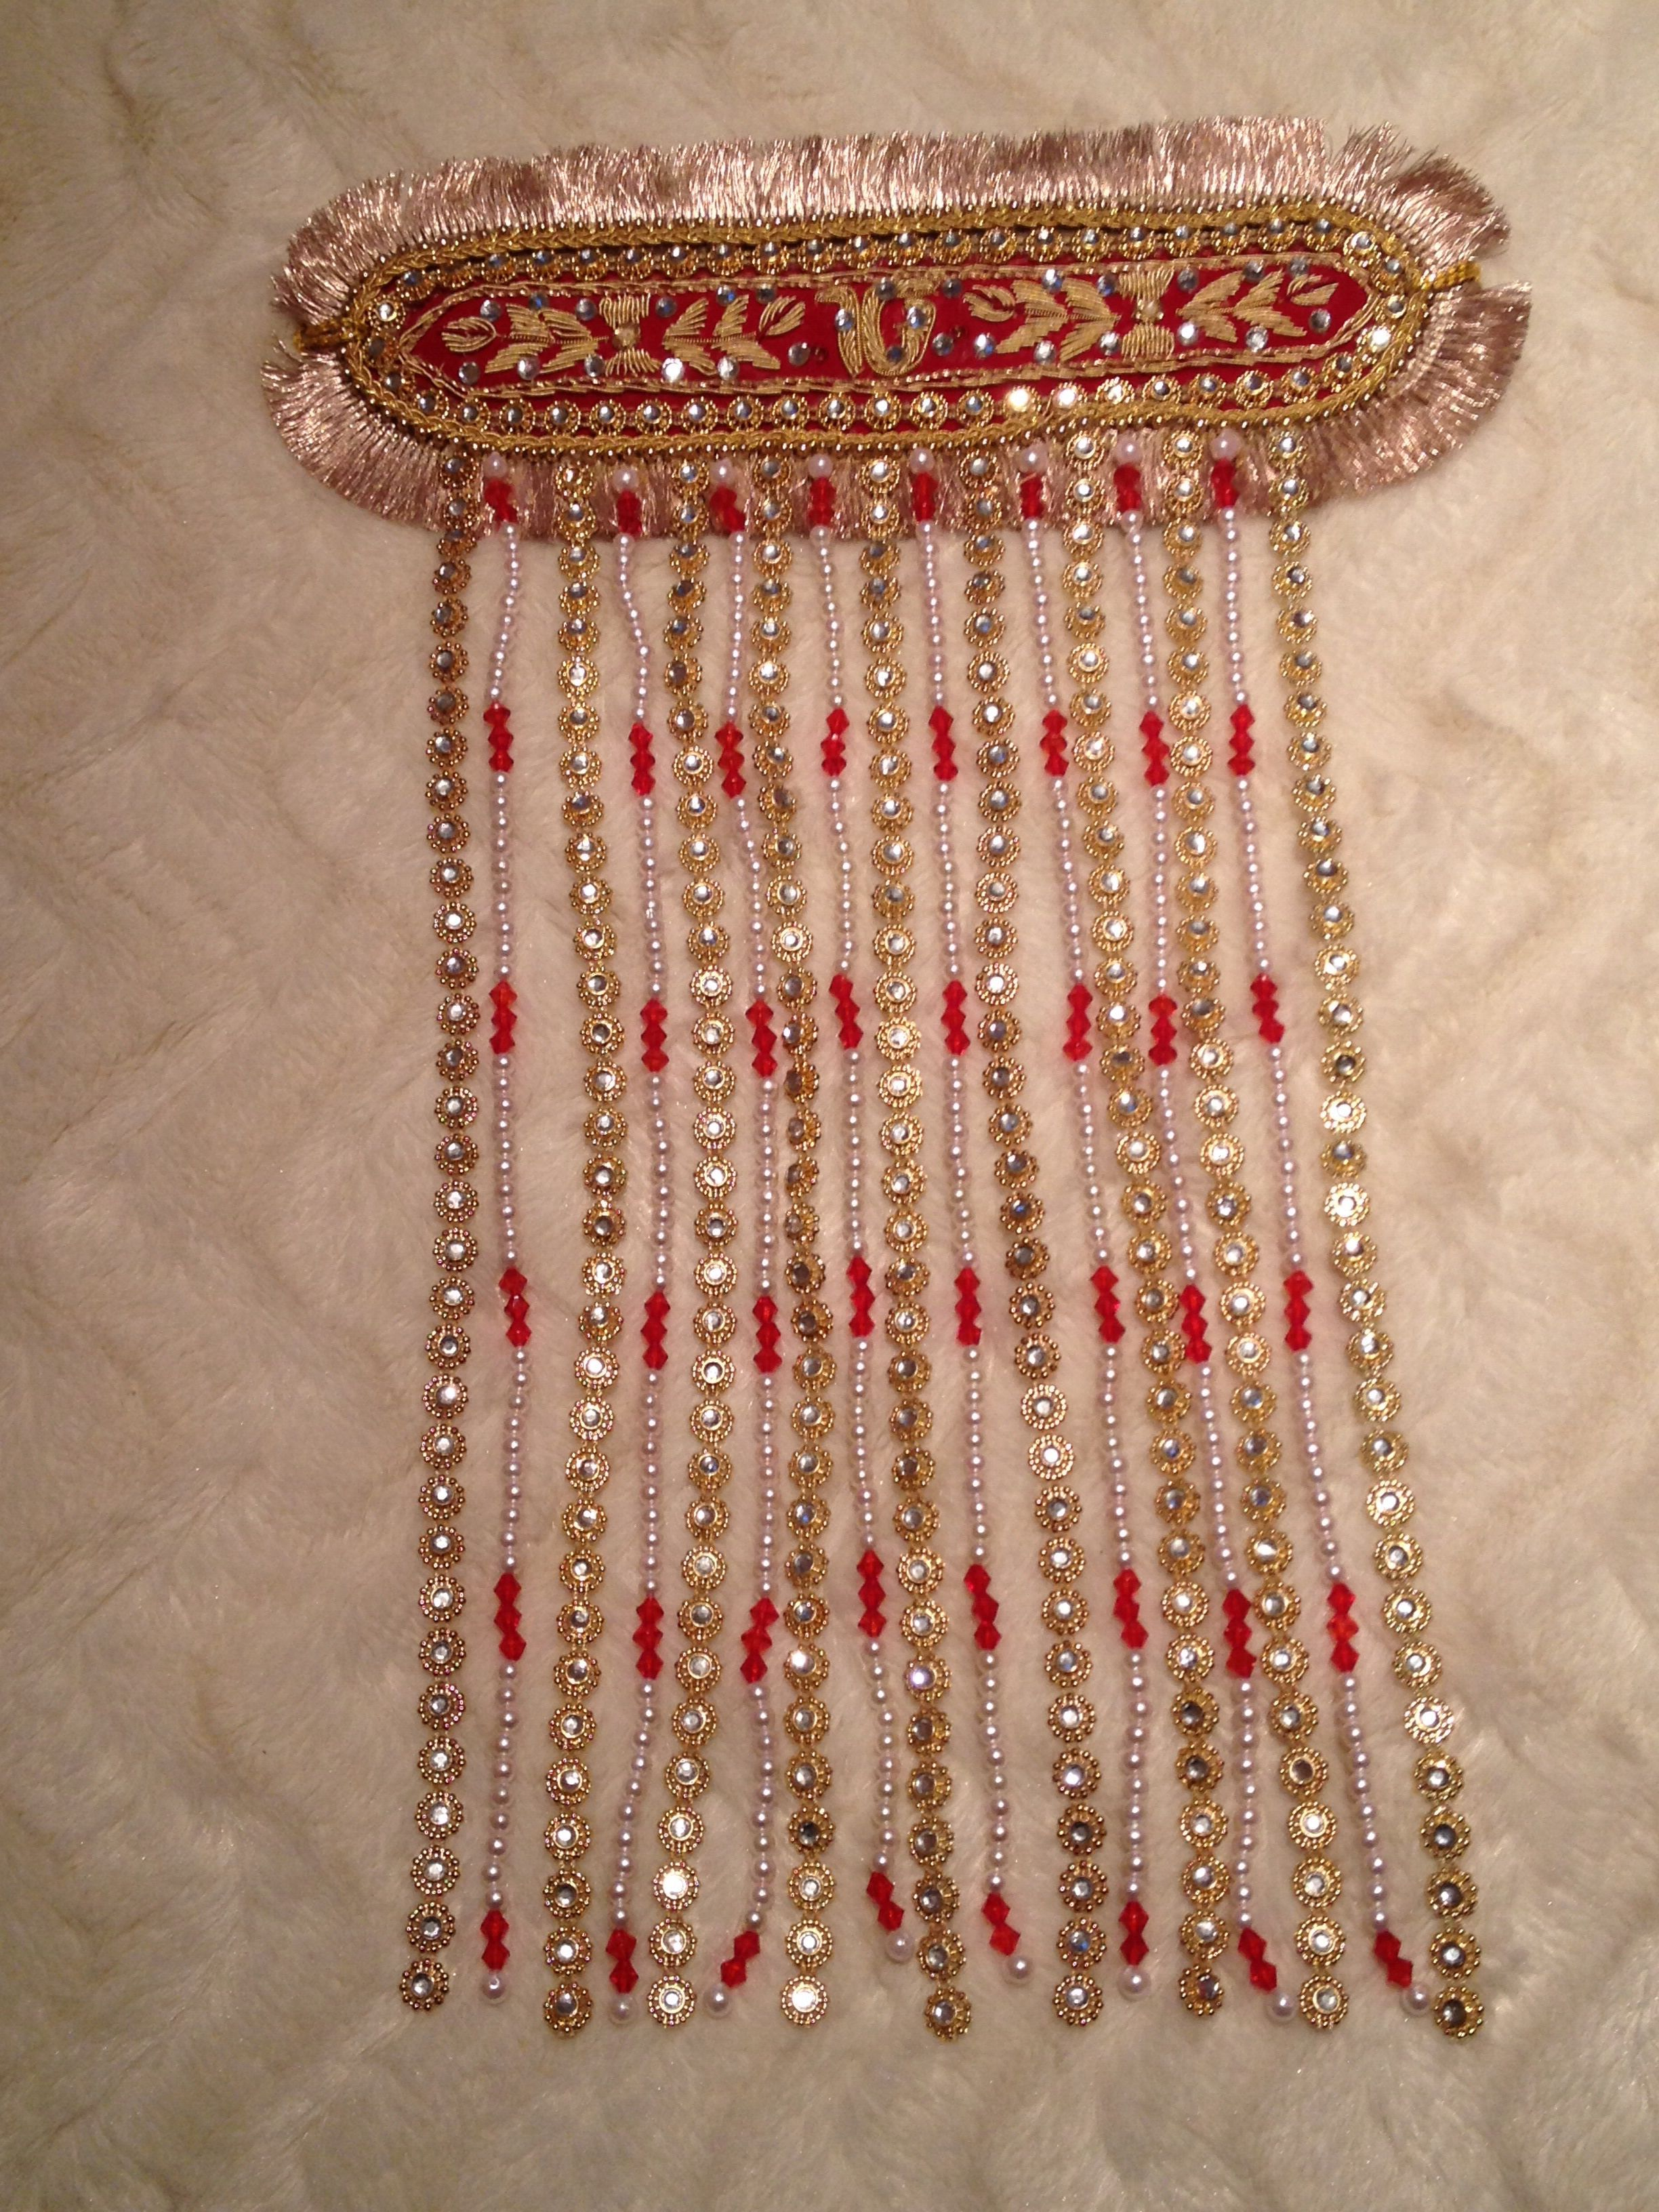 I modified this sehra indian veil worn by the groom on his